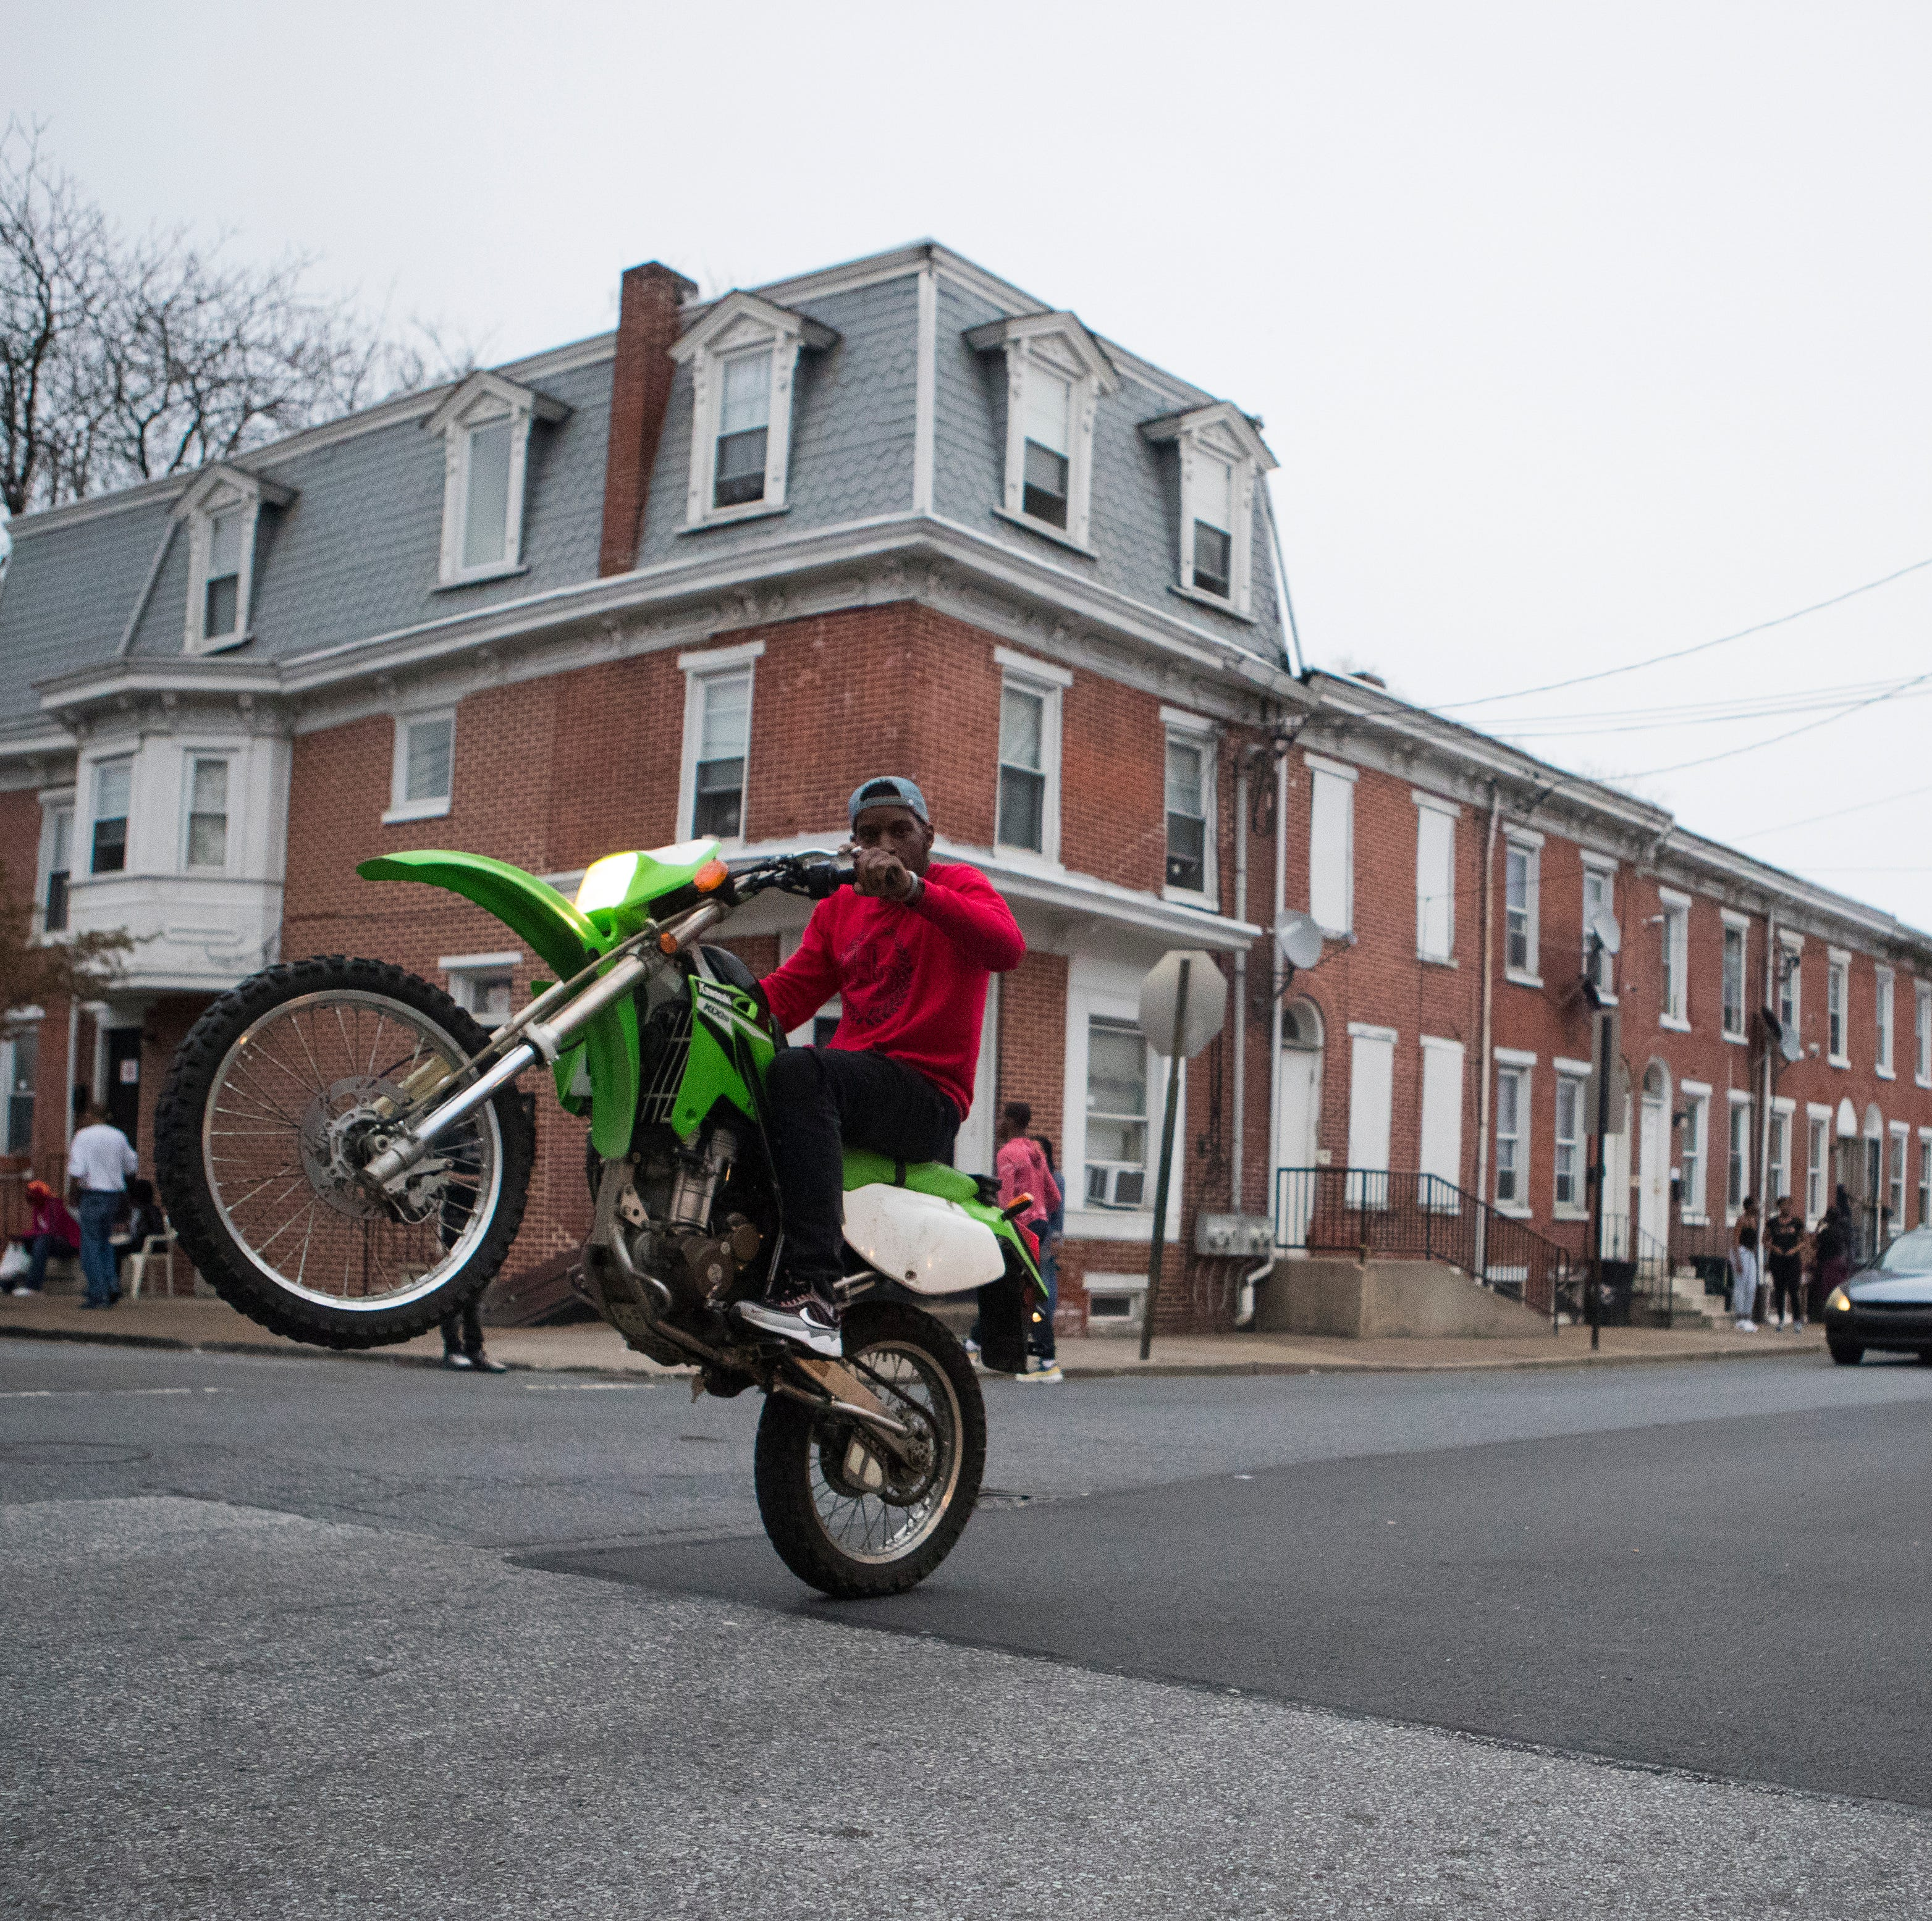 Wilmington police promise they'll enforce street dirt bike riding rules